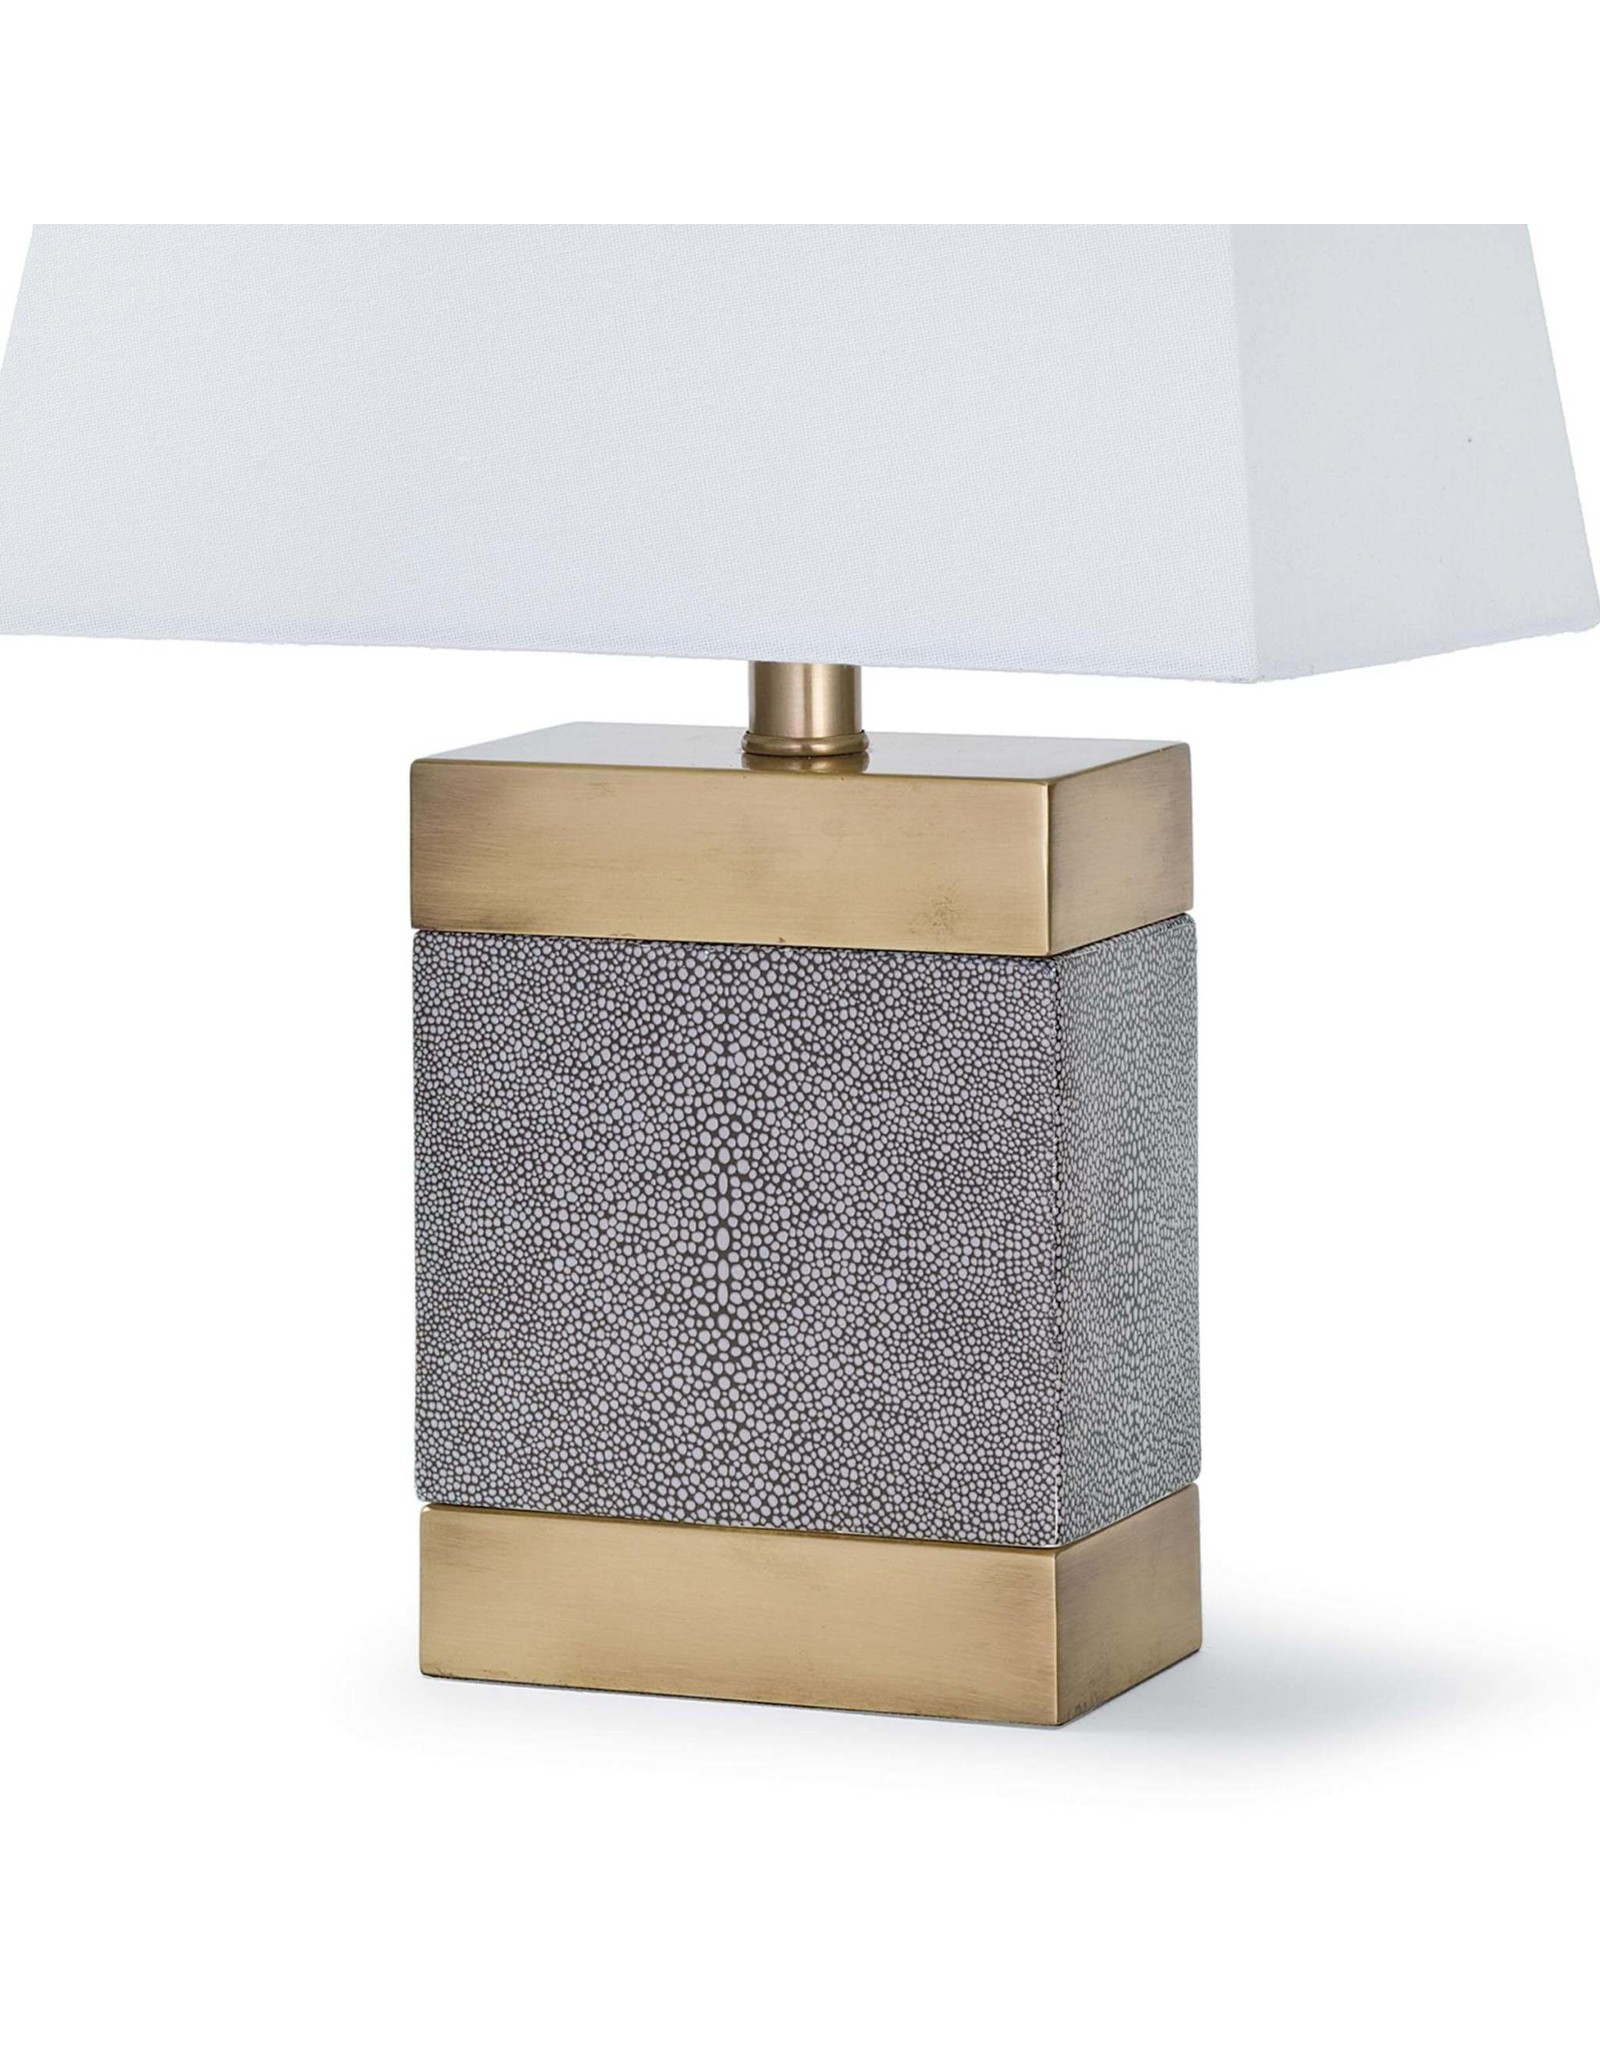 Regina Andrew Design Elliot Ceramic Shagreen Table Lamp